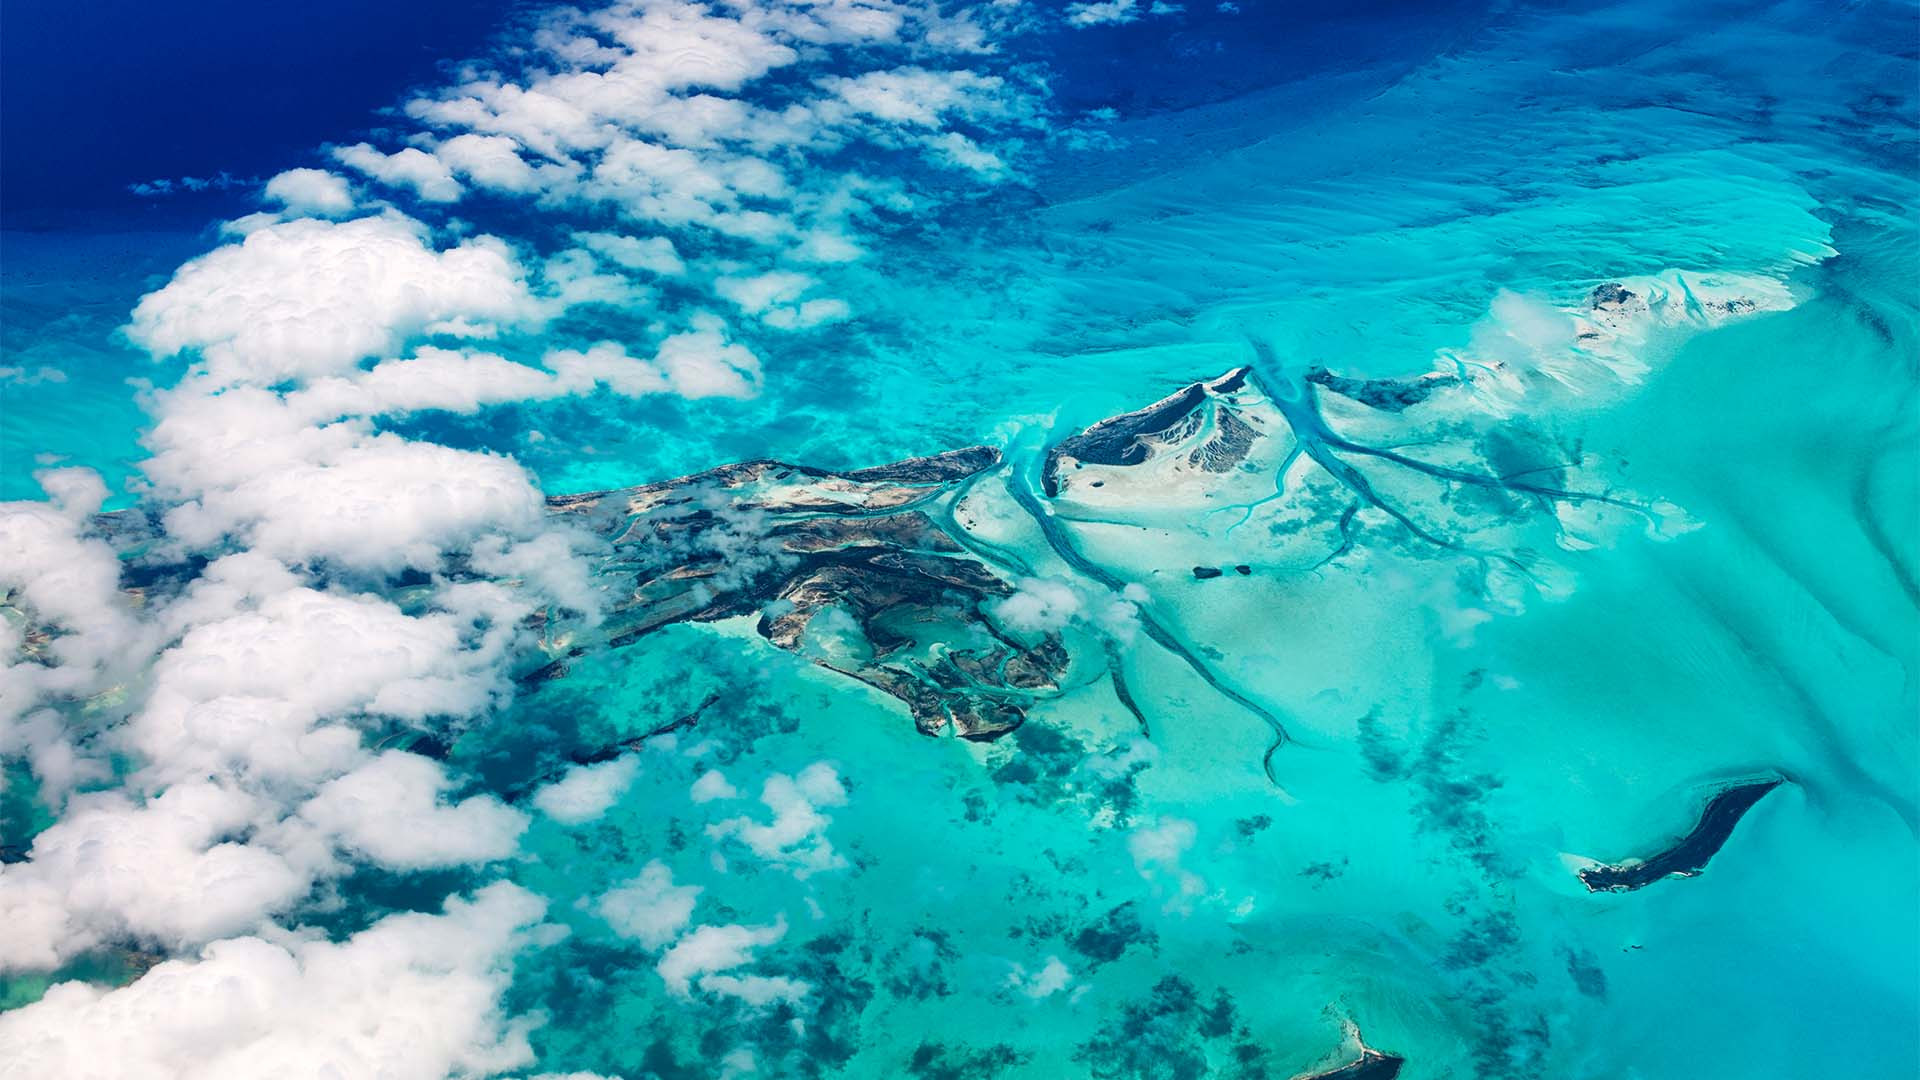 The stunning blue water surrounding The Bahamas